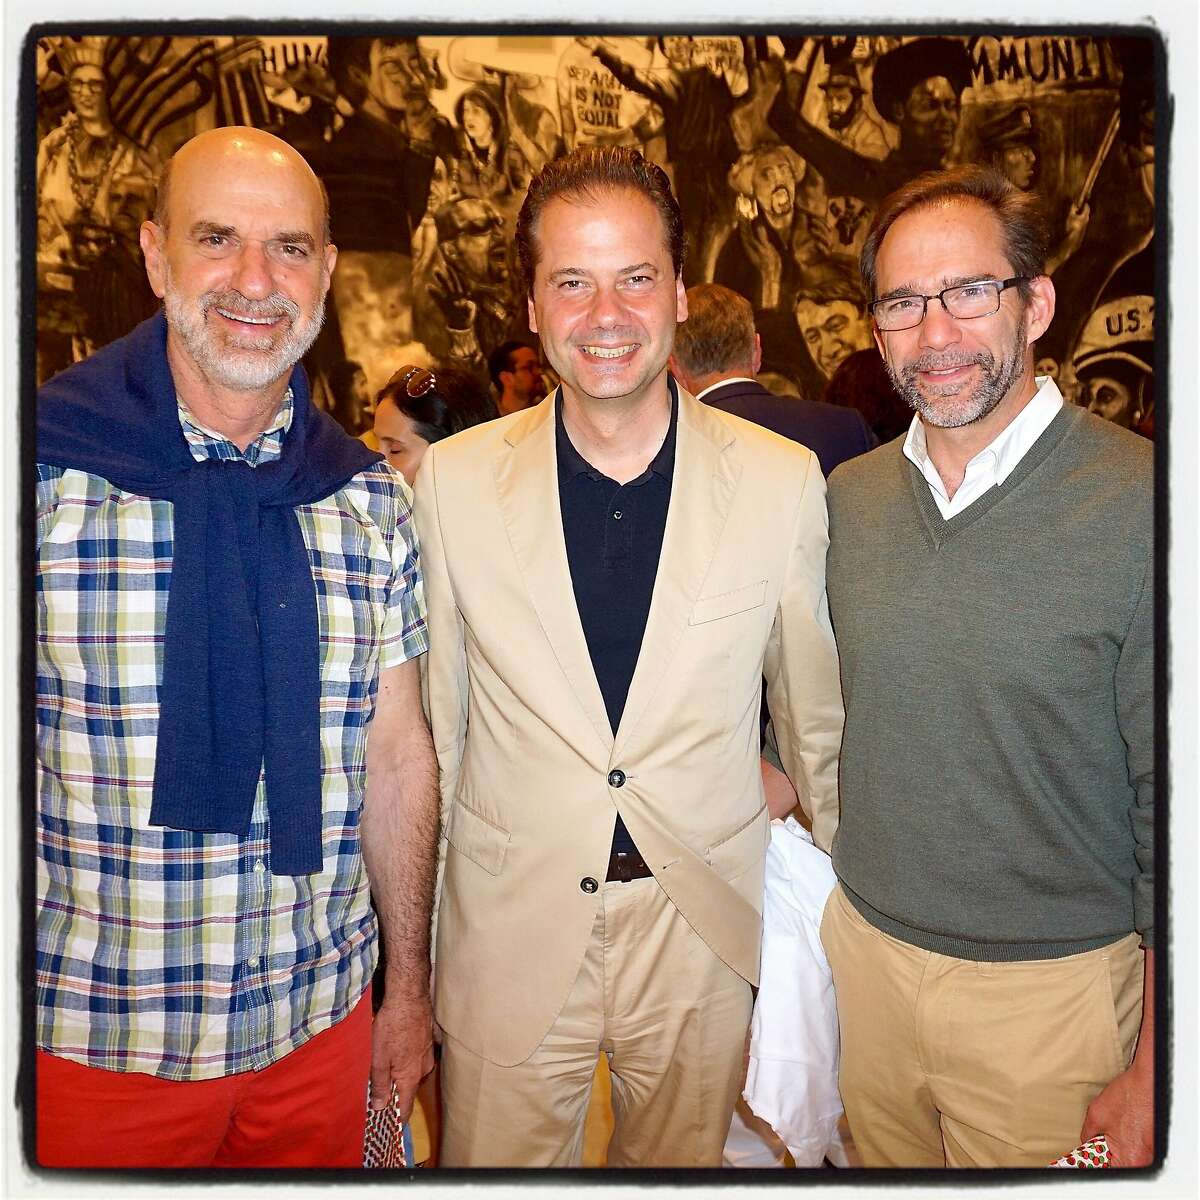 Museum poobahs (from left) SFMOMA Board president Bob Fisher, FAM Director Max Hollein and BAMPFA Director Larry Rinder at Stonescape. July 2016.